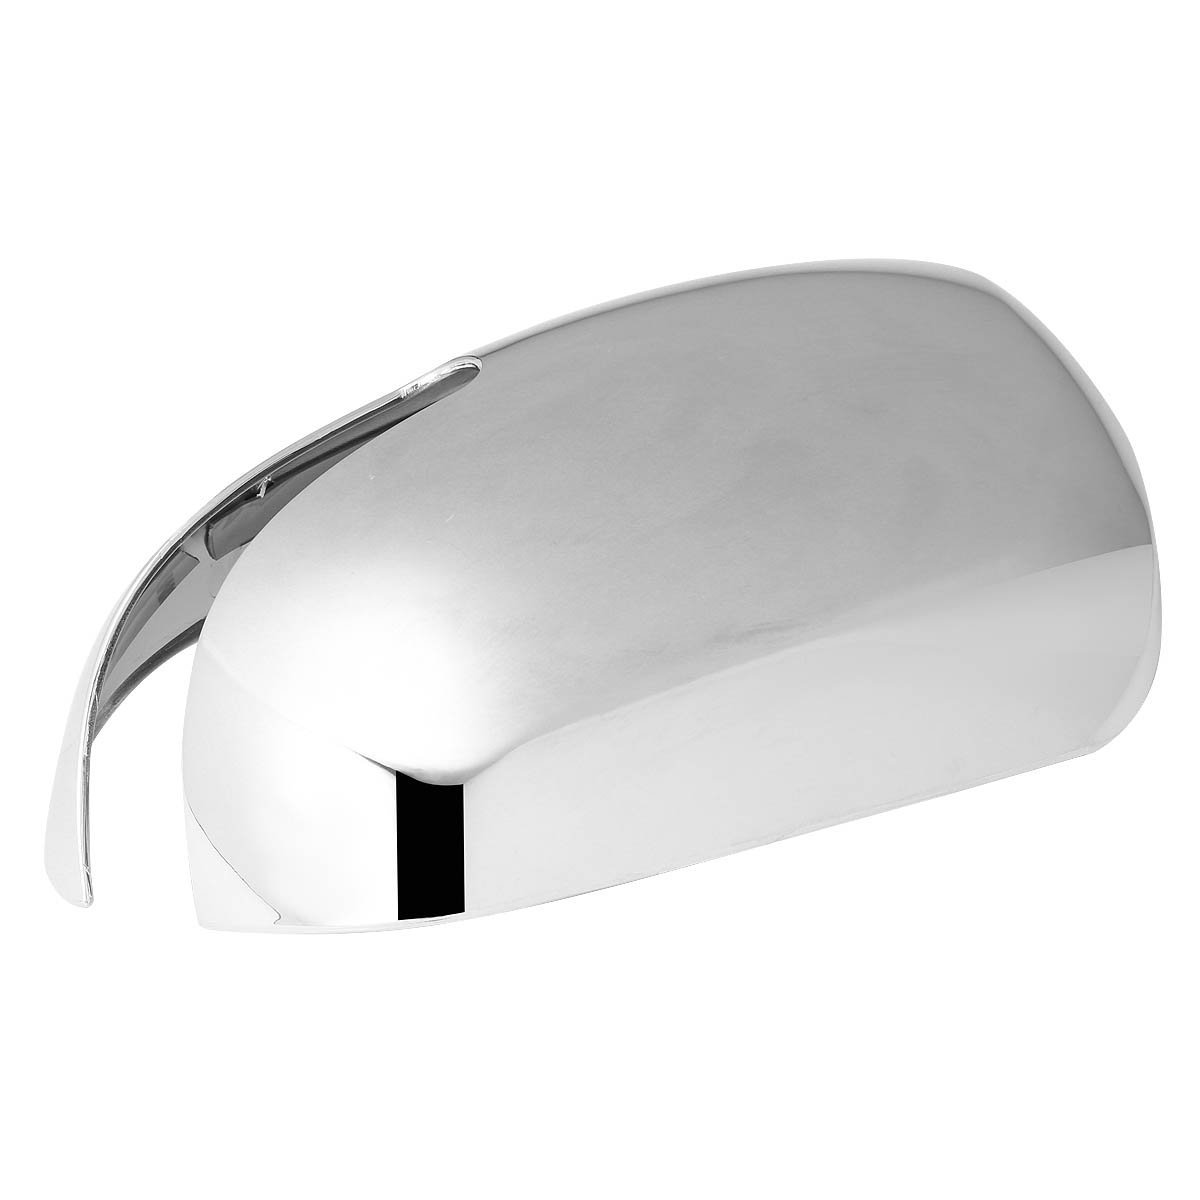 2008 2015 Scion Xb Chrome Plated Side Mirror Covers